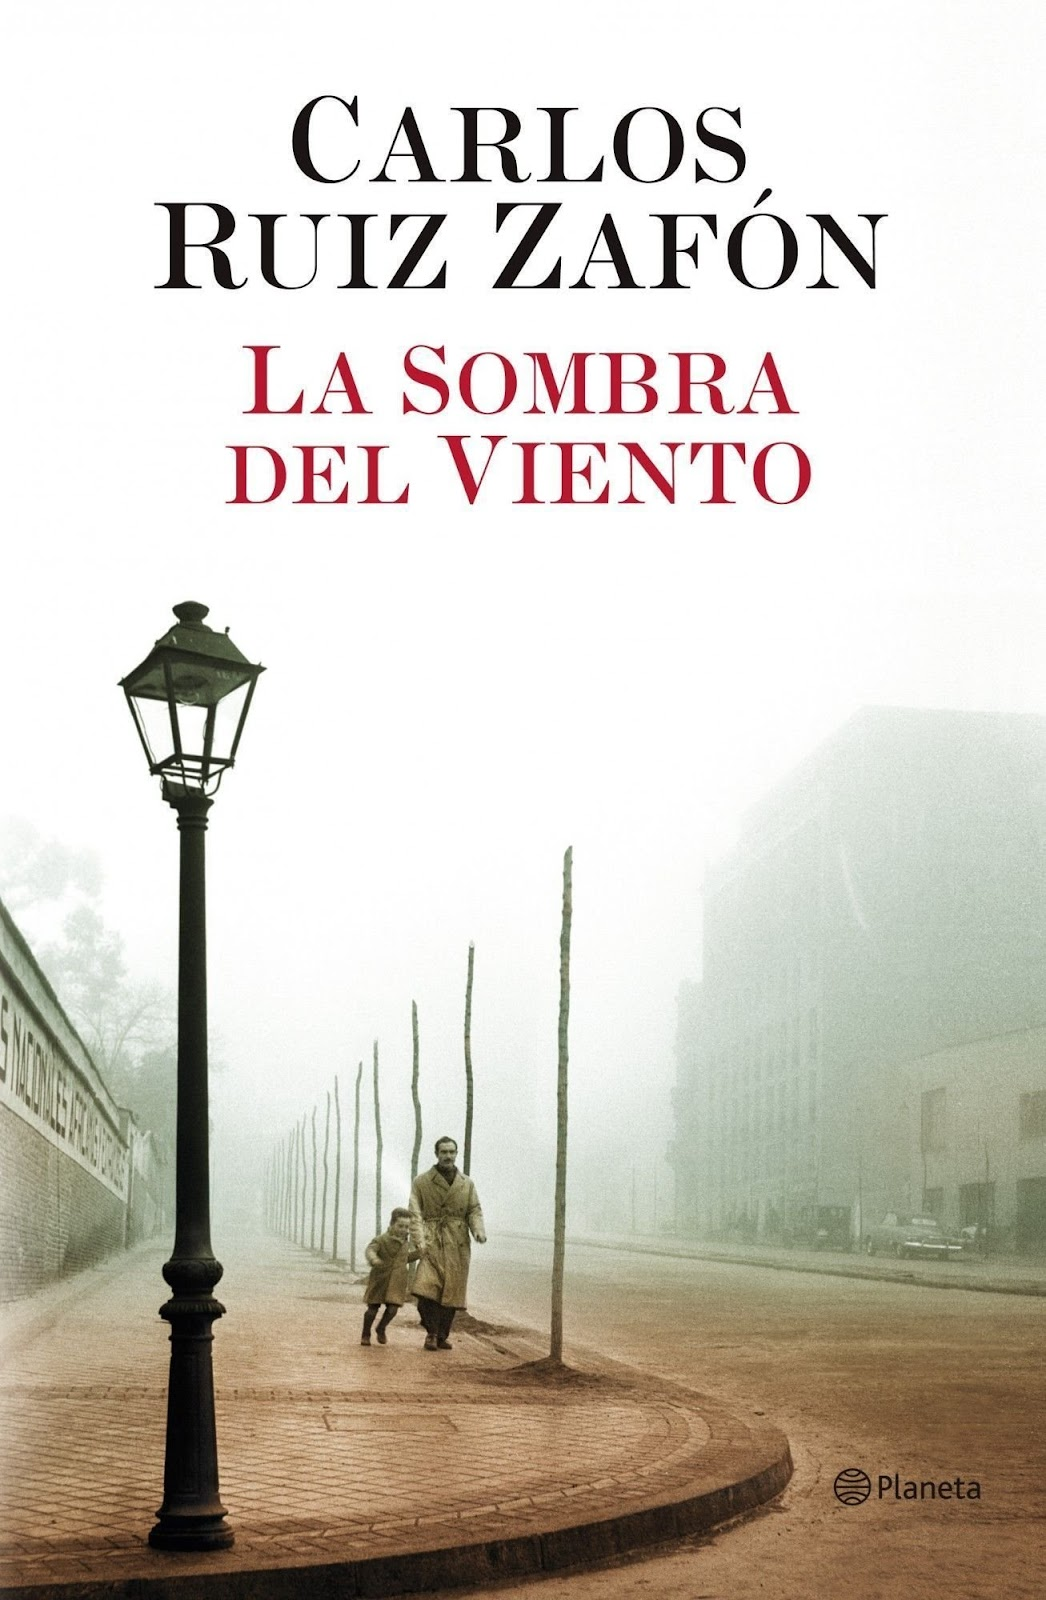 Image of the front cover of the novel La Sombra Del Viento.